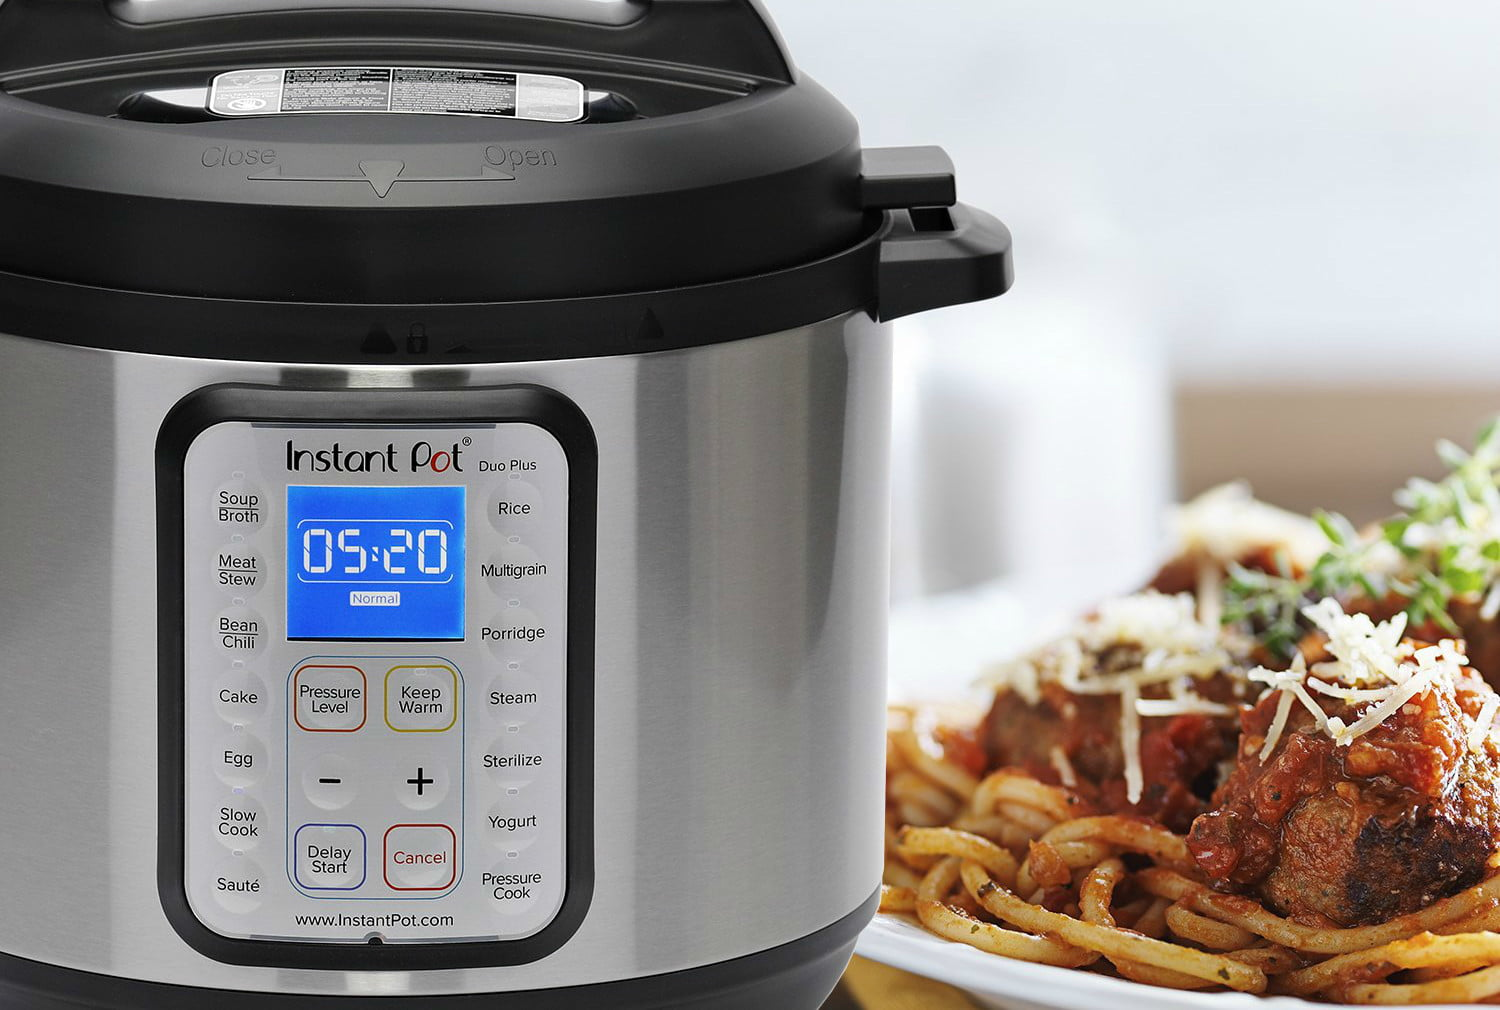 amazon slashes price on instant pot duo plus60 for this memorial day sale plus 60 6 qt 9 in 1 multi  use programmable pressur